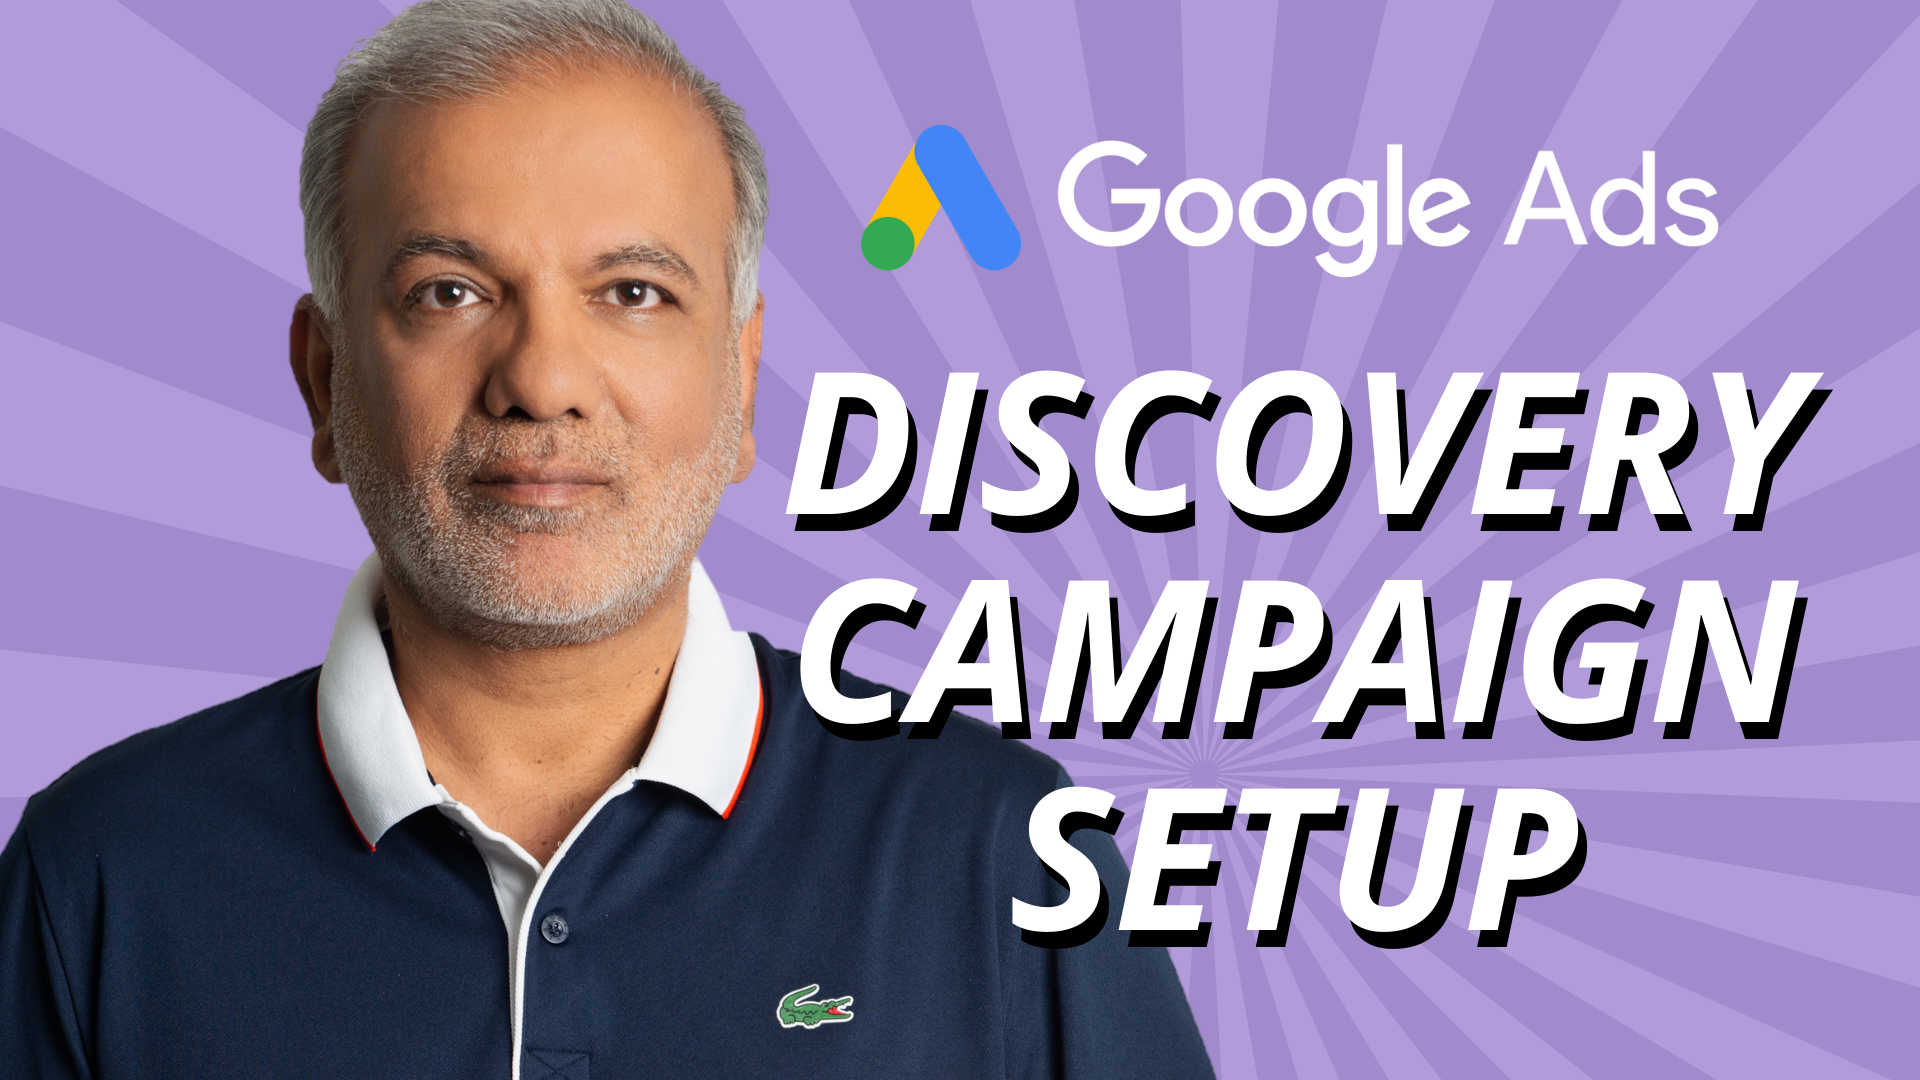 Google Ads For Dentists: How To Set Up Google Ads Discovery Campaigns